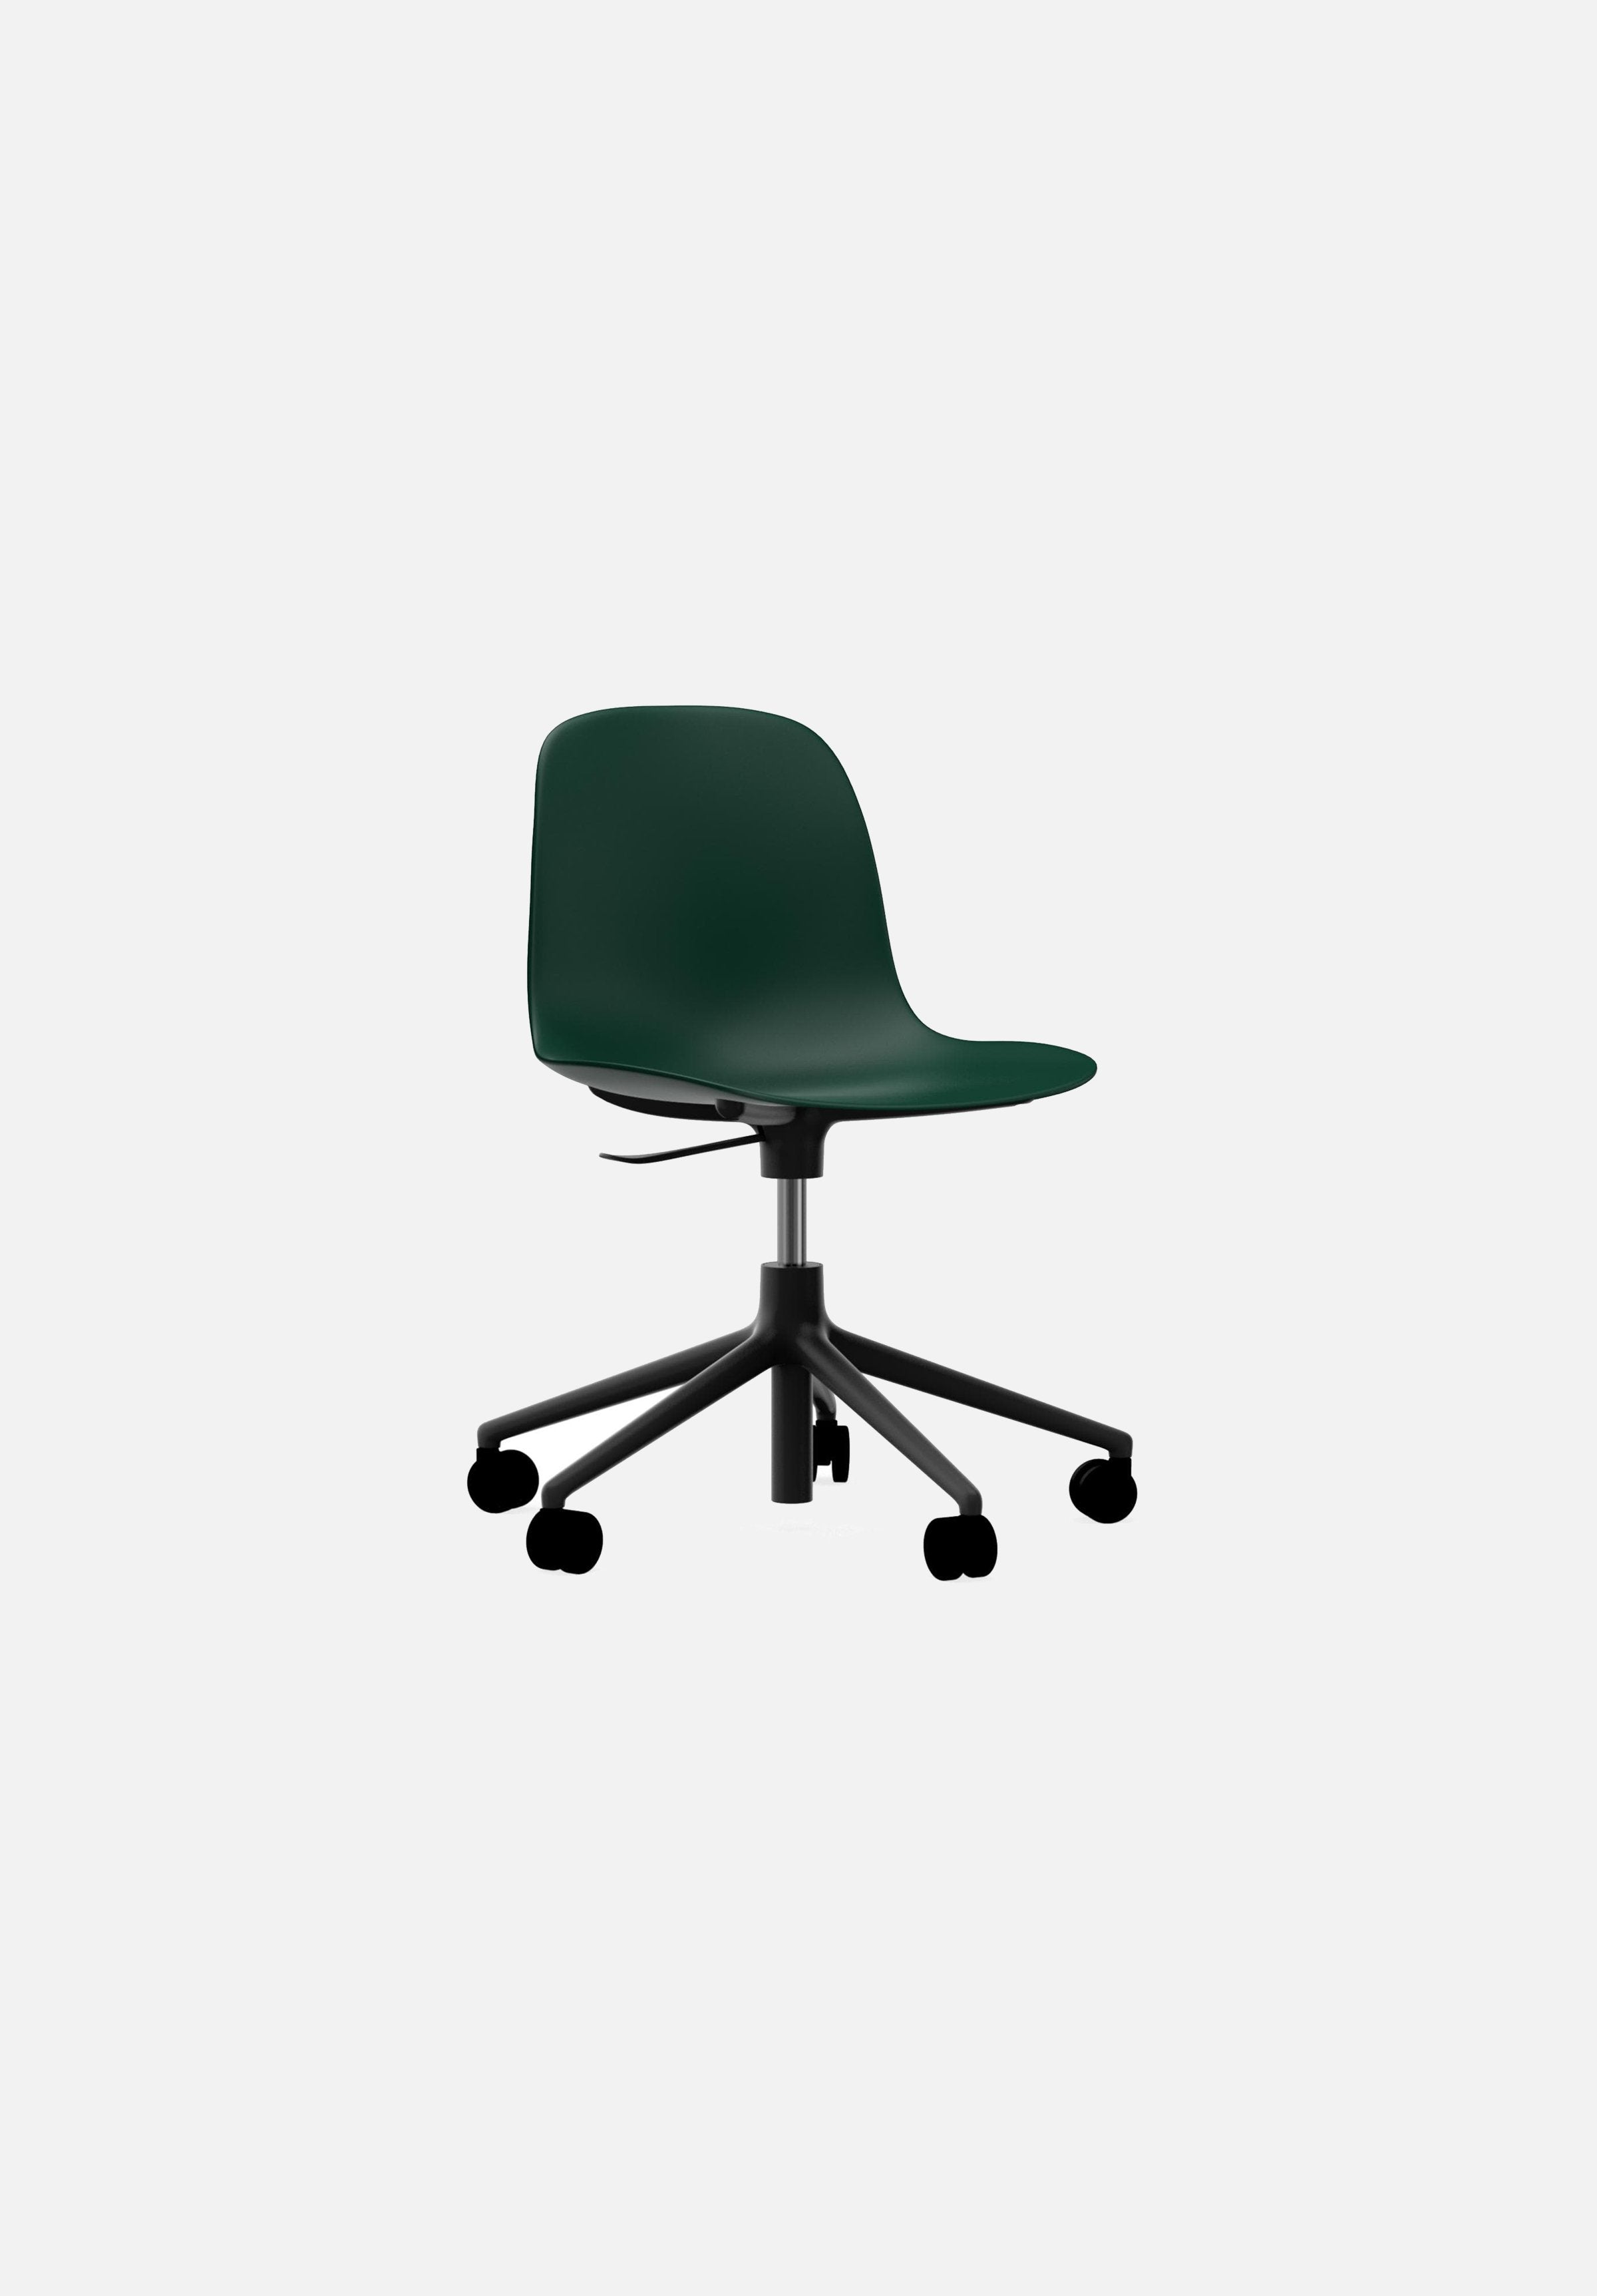 Form Chair — Swivel Gaslift-Simon Legald-Normann Copenhagen-Green-Black Aluminum-Average-canada-design-store-danish-denmark-furniture-interior